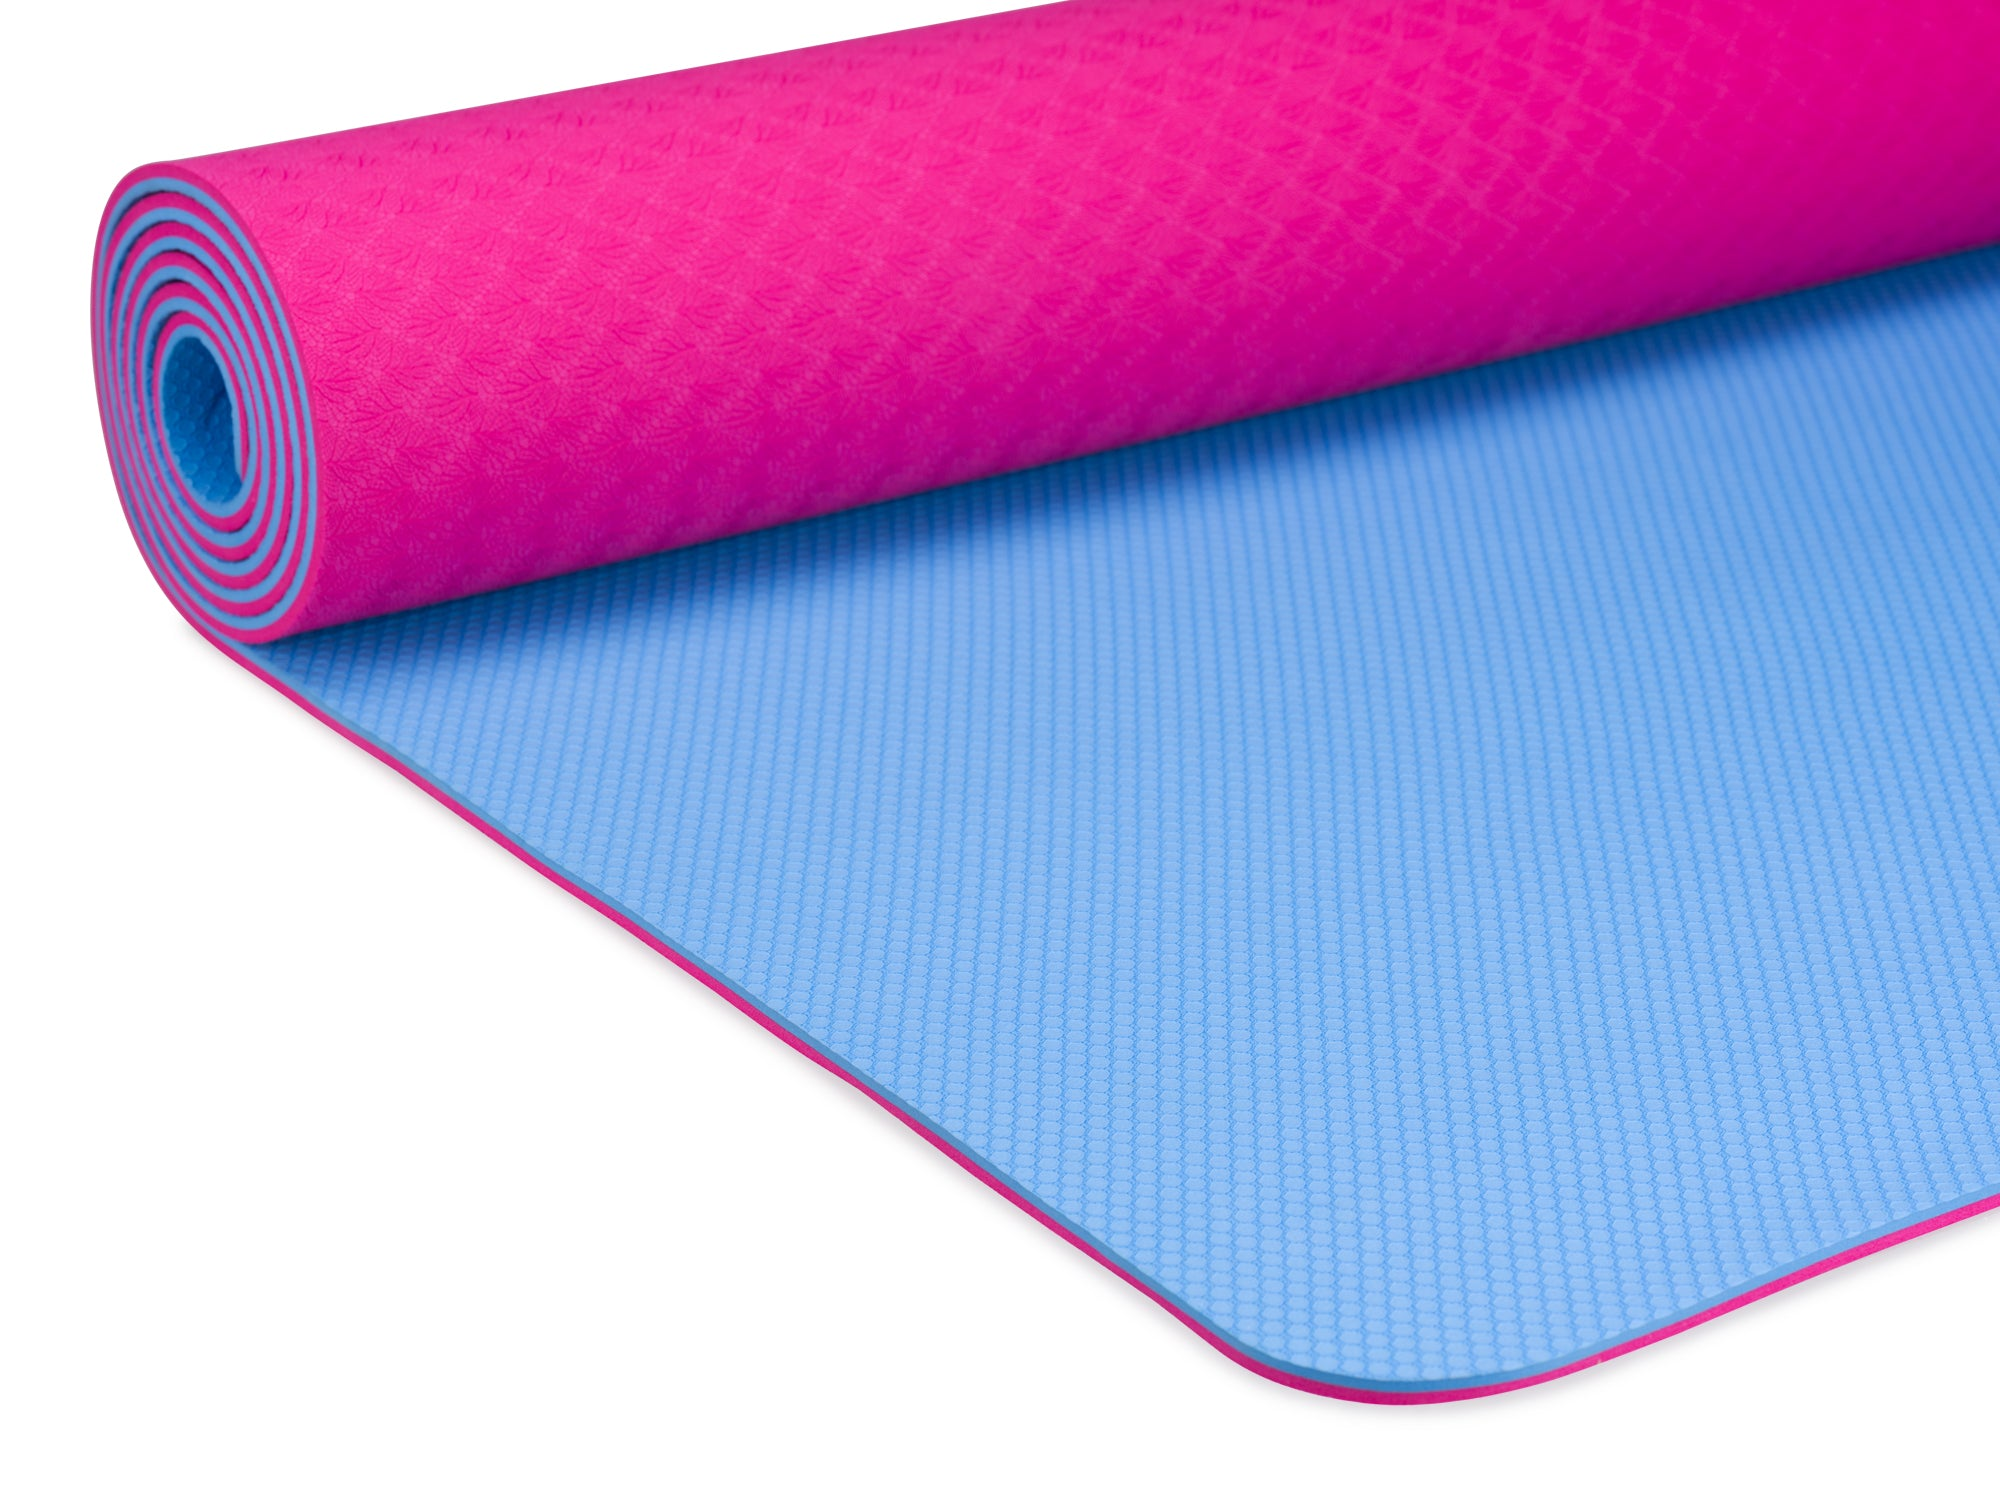 YOGALAND Premium Yoga Mat with Carrier Strap - Yoga Mat 6mm 1/4-Inch Thick, Non-Slip, Eco-Friendly Lightweight, Extra Large 72 x 24 for Yoga, Pilates, Exercise, Fitness (Pink)